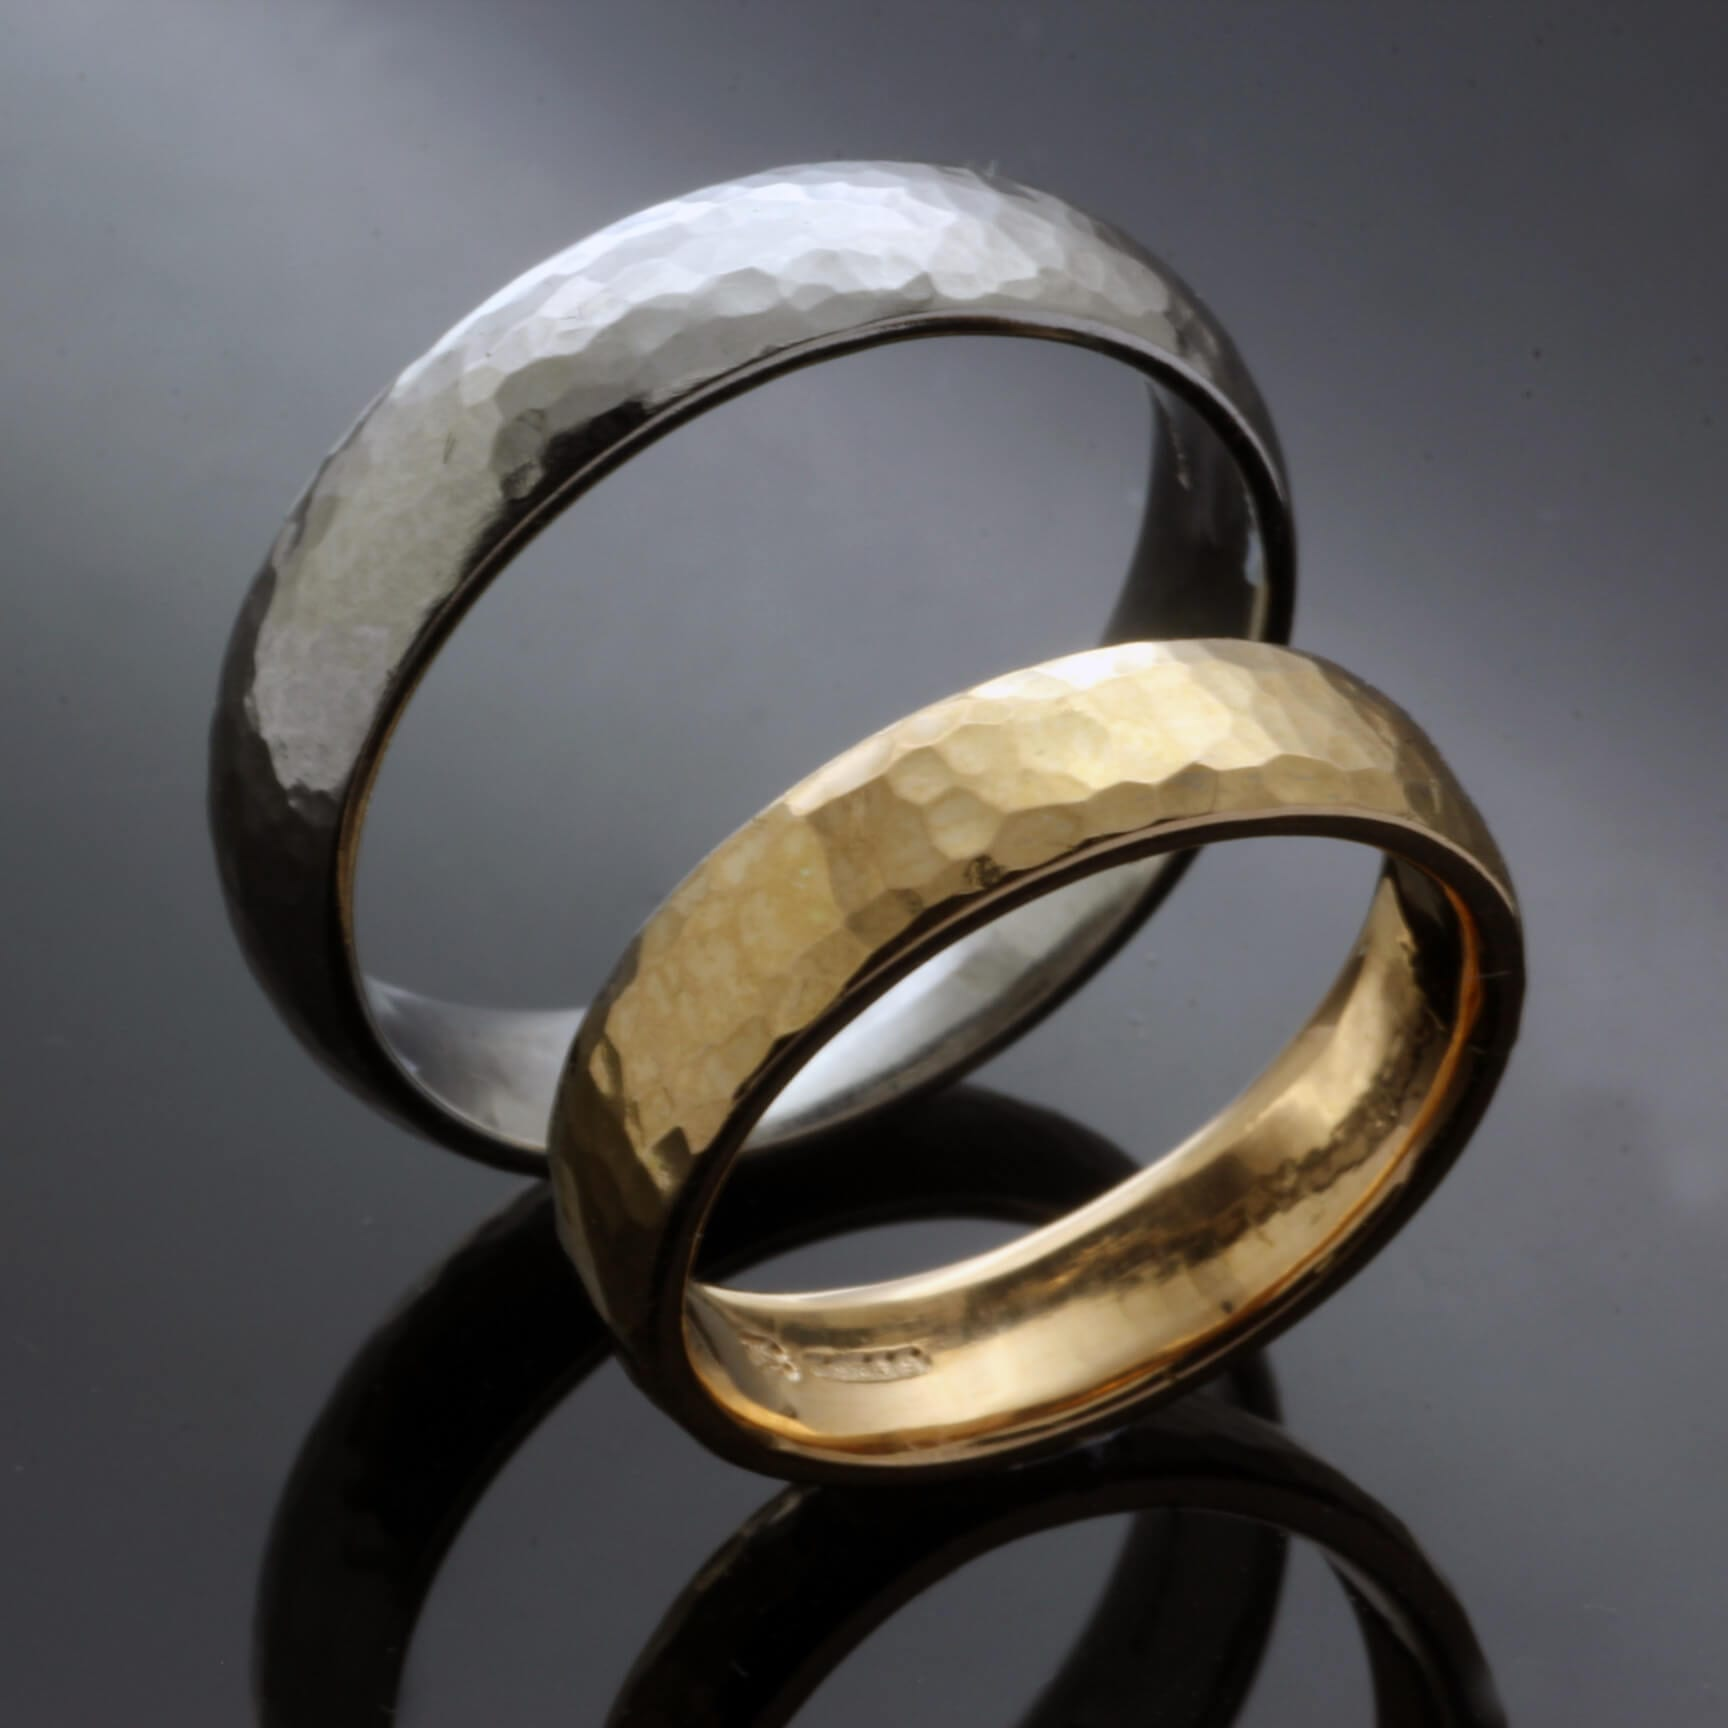 Bespoke textured matching wedding bands in palladium and 22ct Yellow Gold